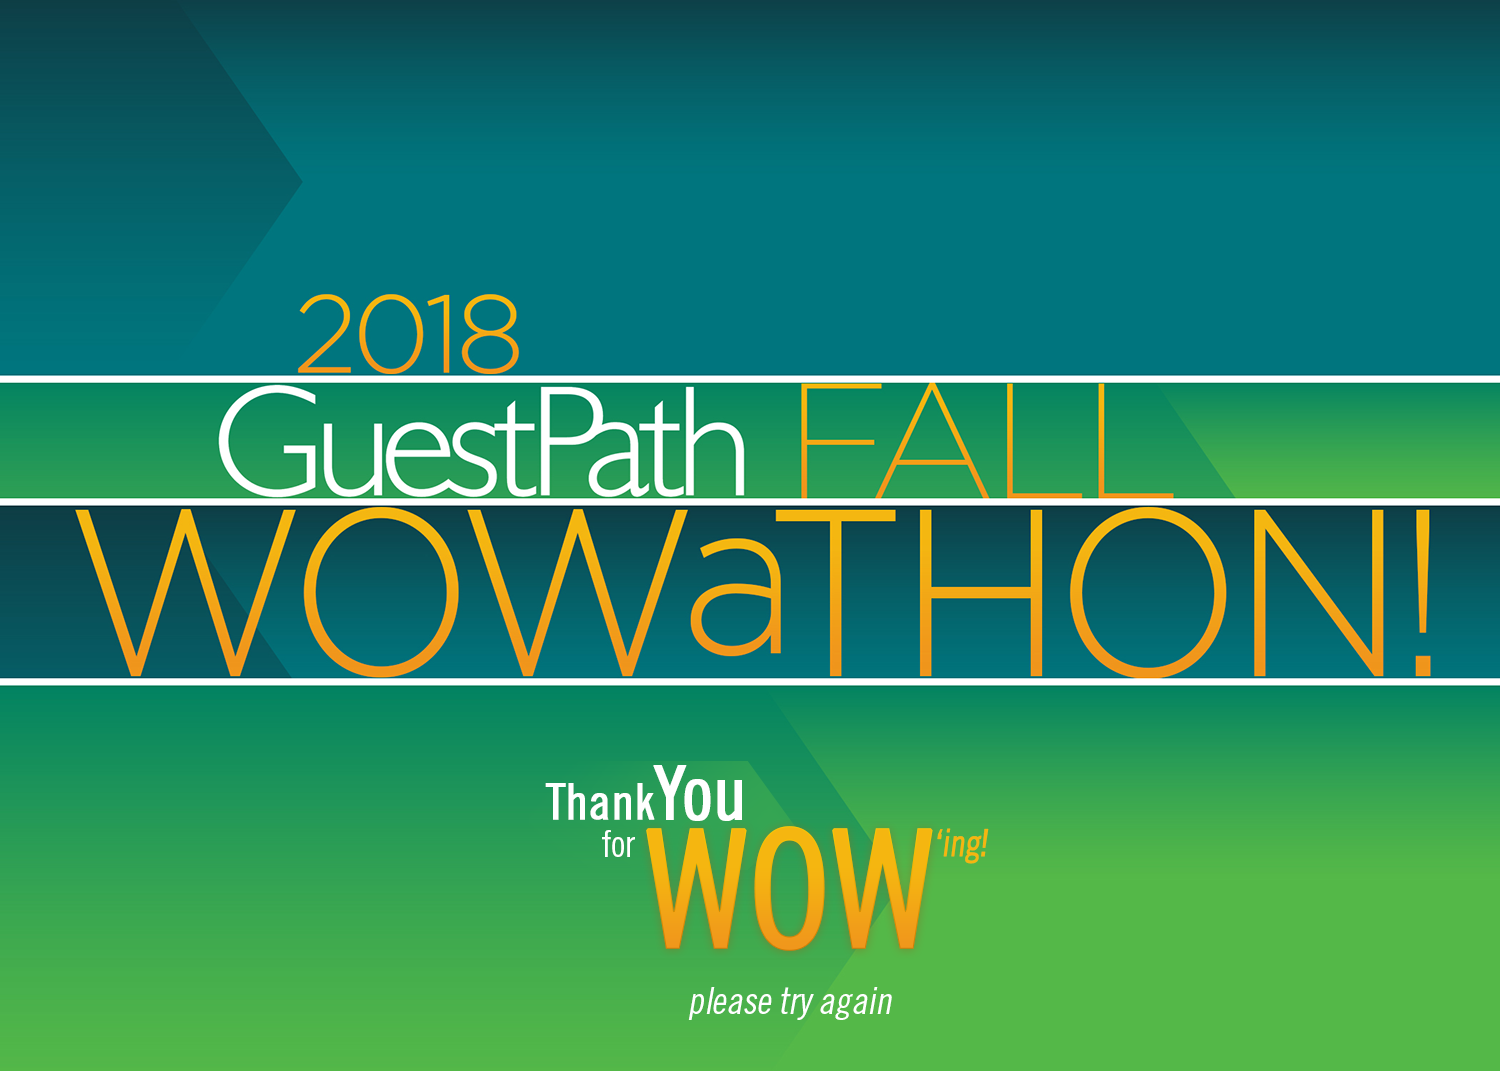 Wow-A-Thon logo upper